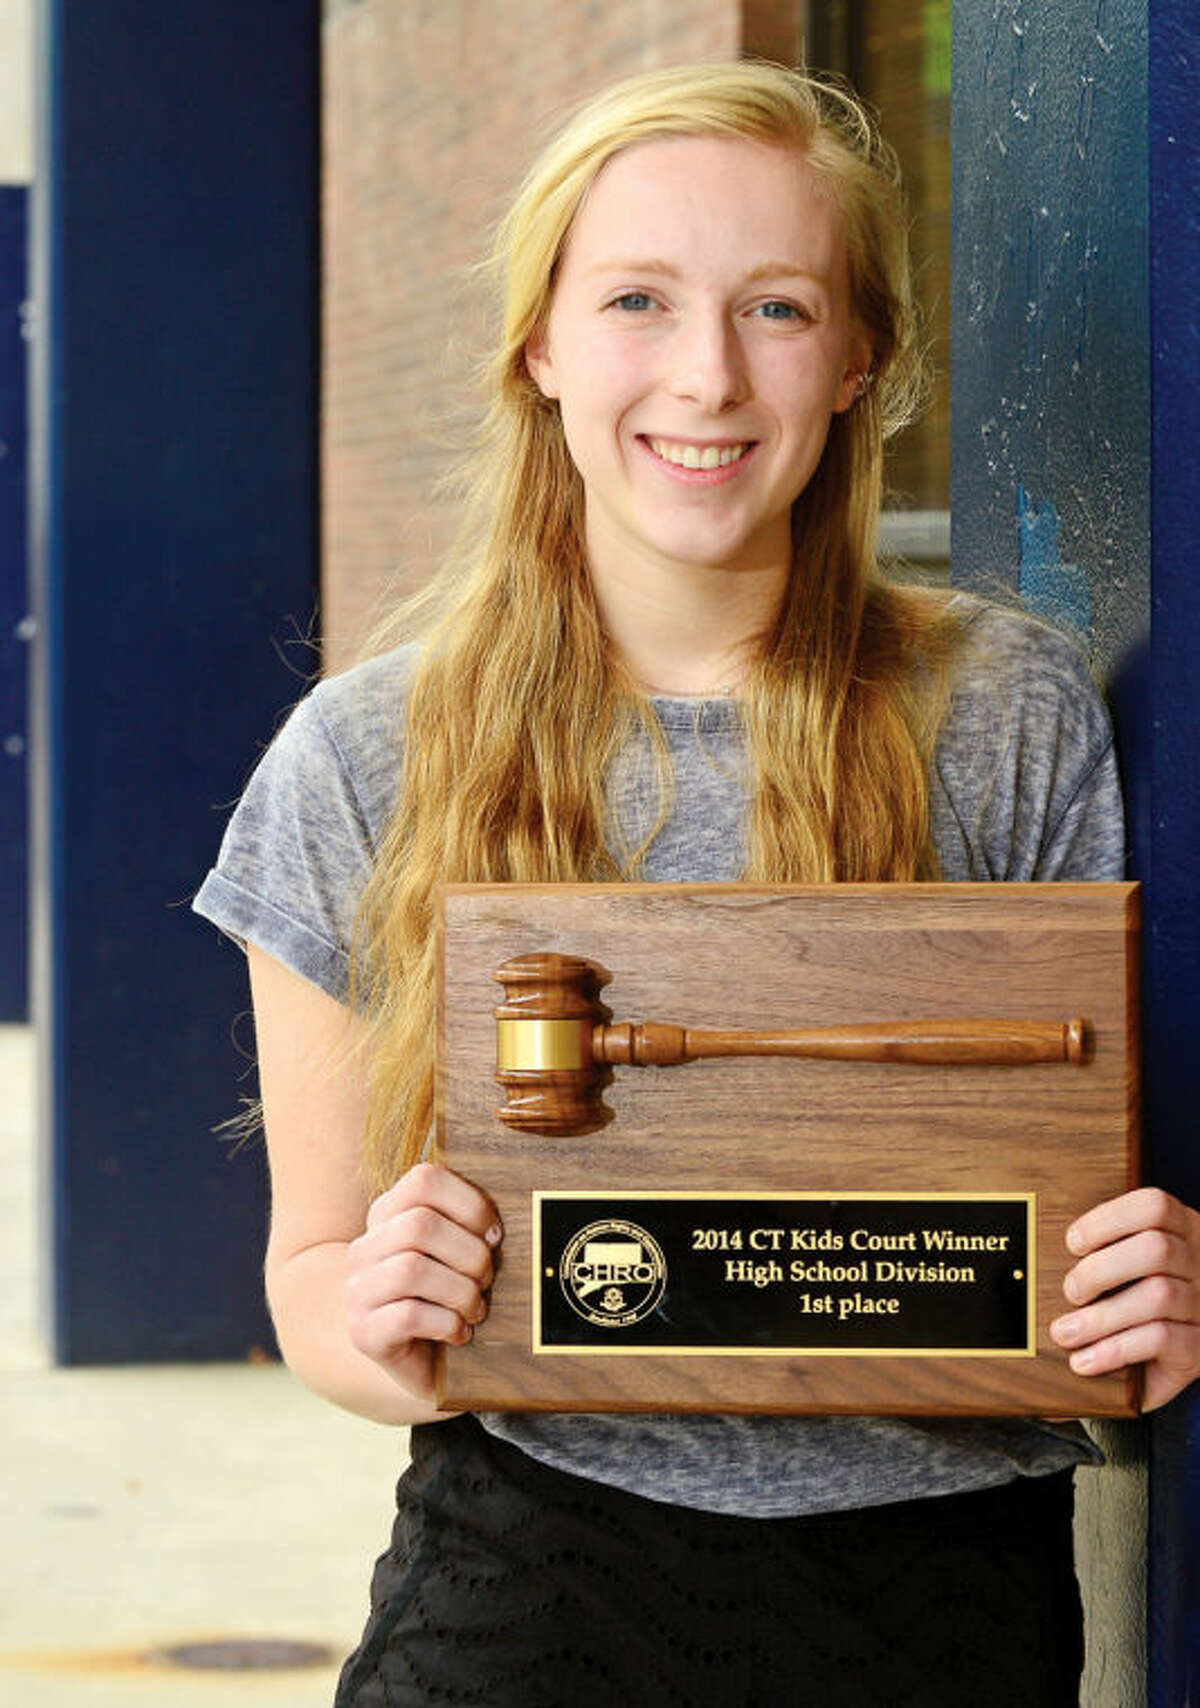 """Olivia Phelan, a Wilton High School junior, was selected as the high school winner of the Connecticut Kids Court Competition in Hartford this week. Her speech was titled """"Ban the Bossy: We Won't Settle for Tokens."""""""